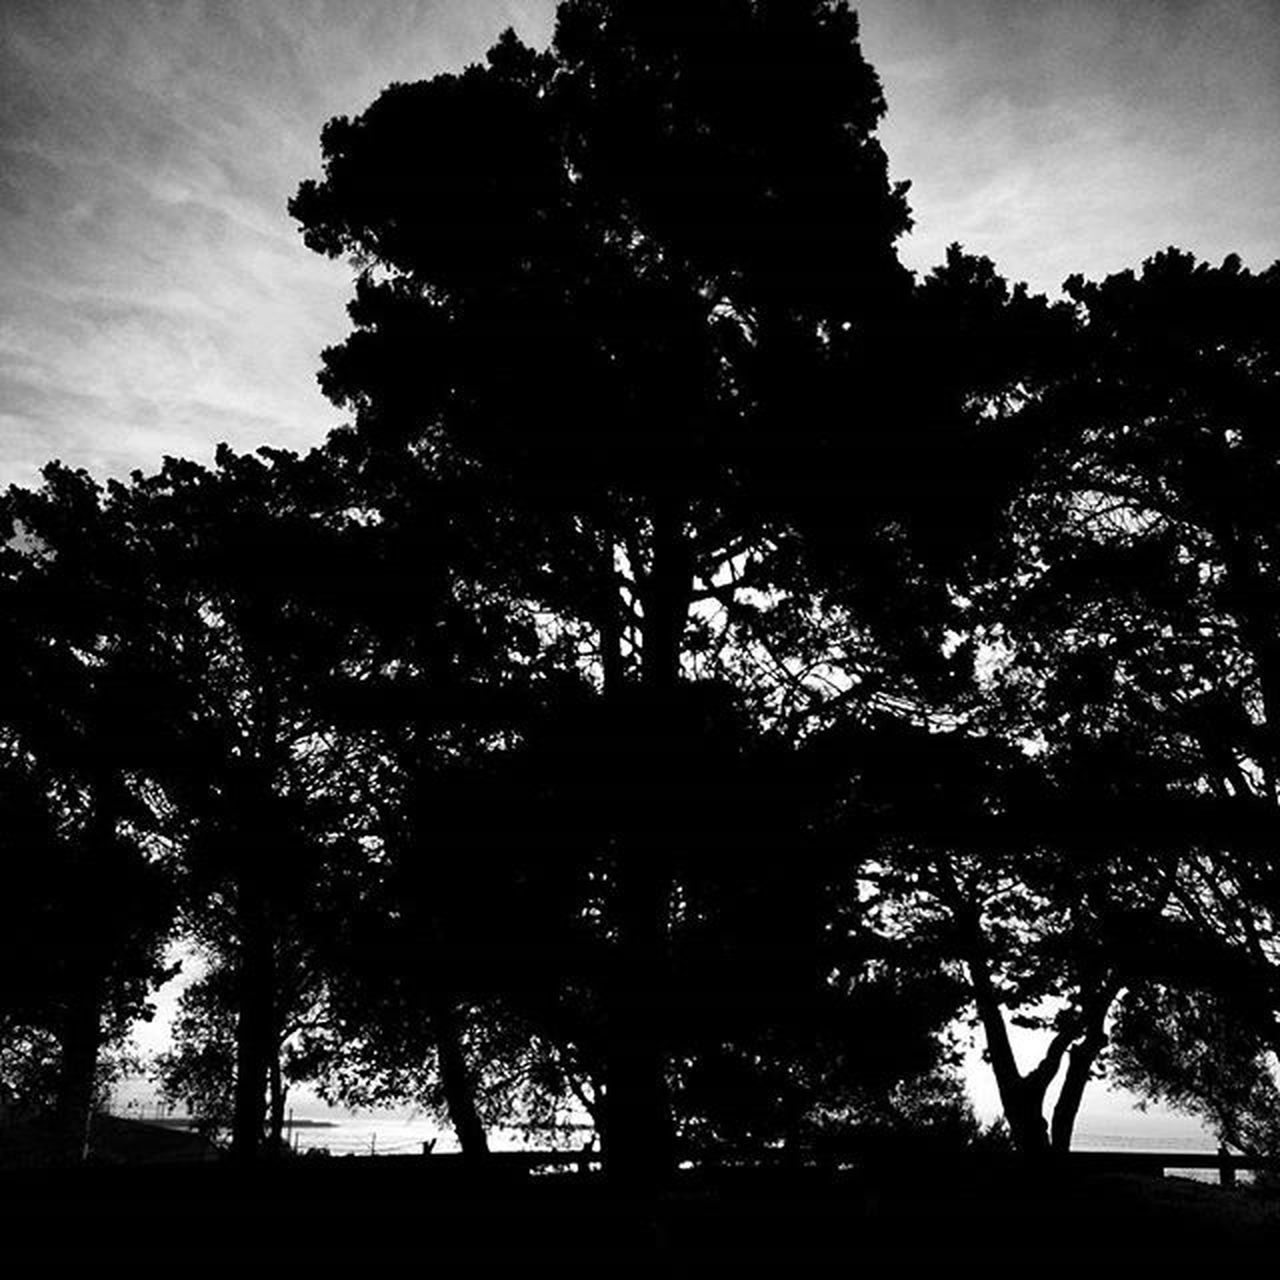 Life Enjoyit Keepgoing Tree Treelovers Nature Naturelovers Peace Peaceful Friday Blackandwhite Blancnoir Sunrise Sunrise_sunsets_aroundworld Shadow Shootingtheglobe Portugalsemefeitos P3top Follow Sun Portugal Marginal Laliphotography Photo Oneplusone landscape_lovers thecoolmagazine